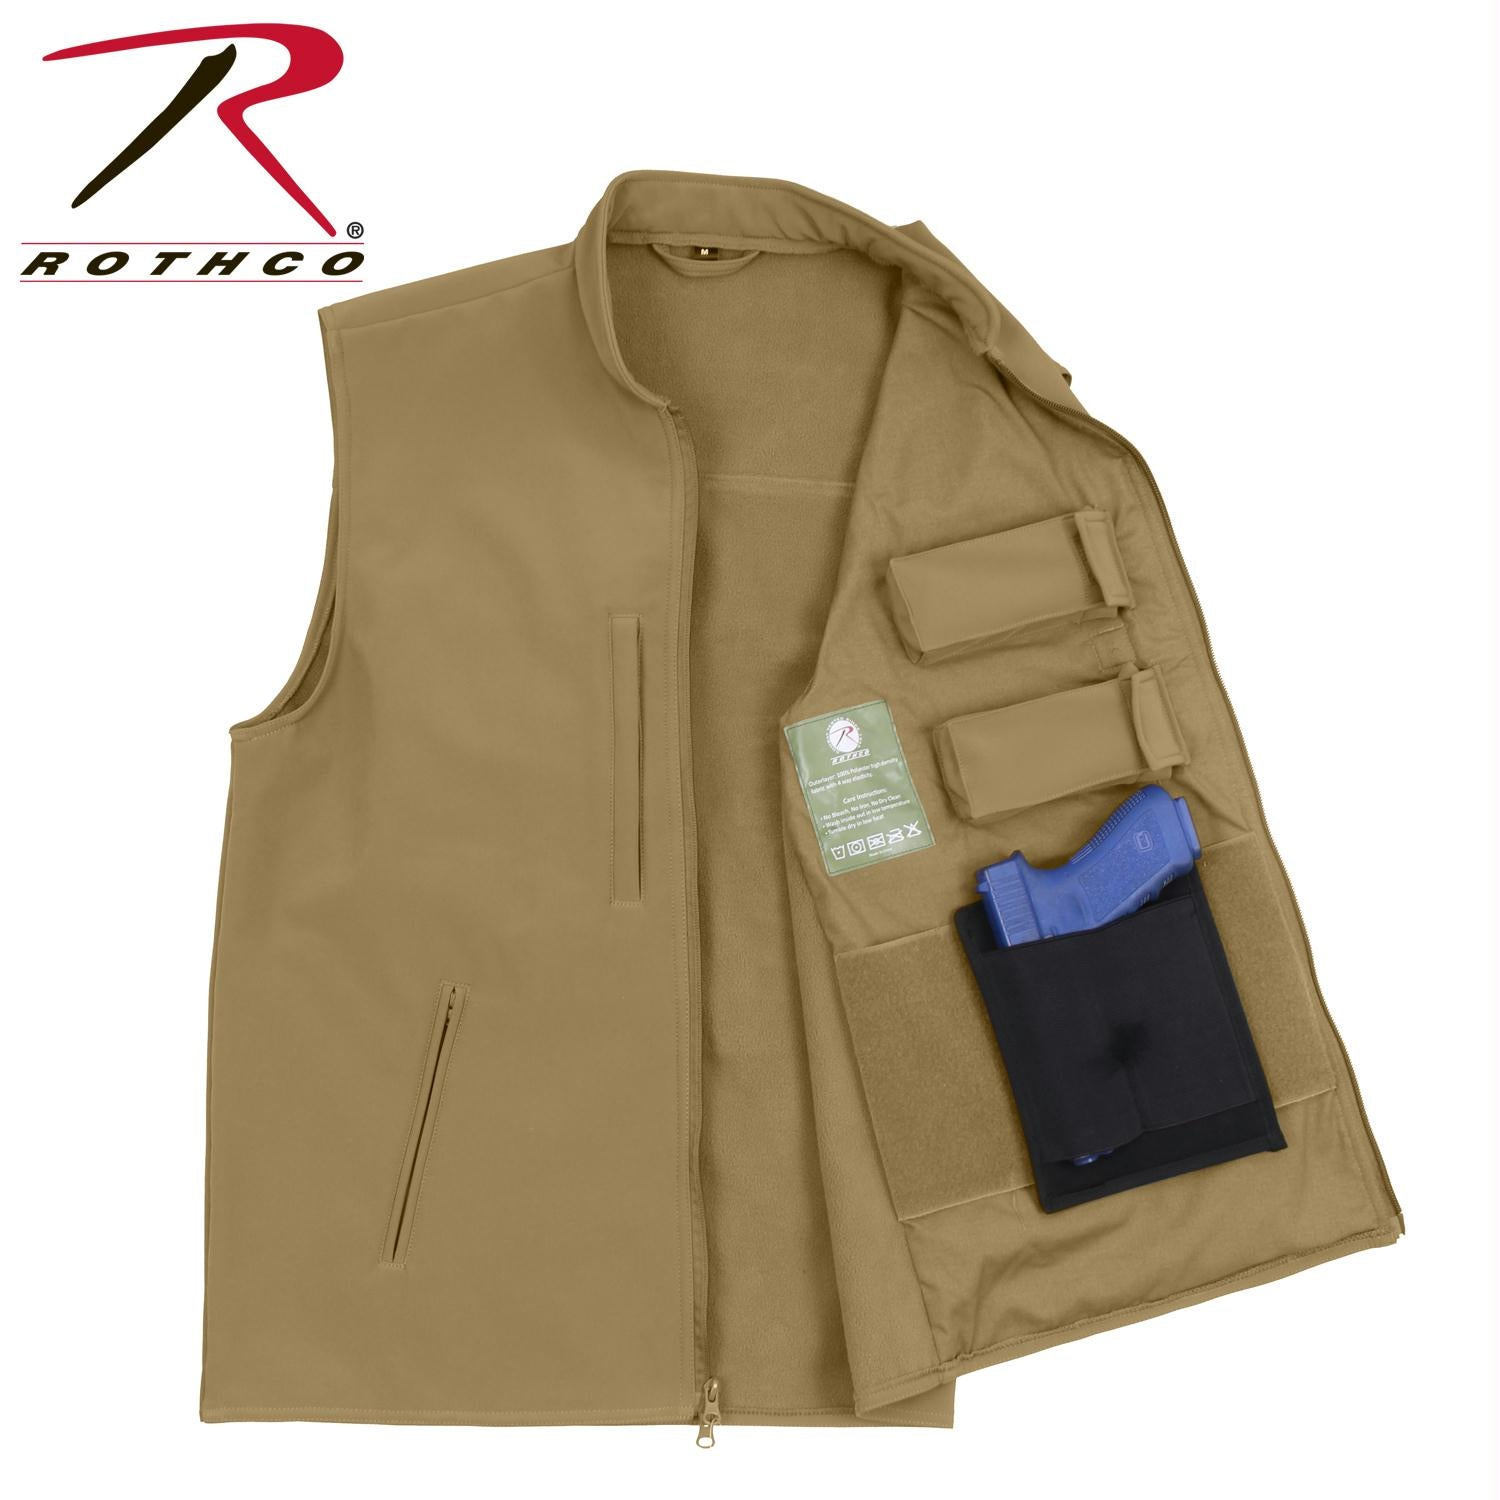 Rothco Concealed Carry Soft Shell Vest - Coyote Brown / 3XL